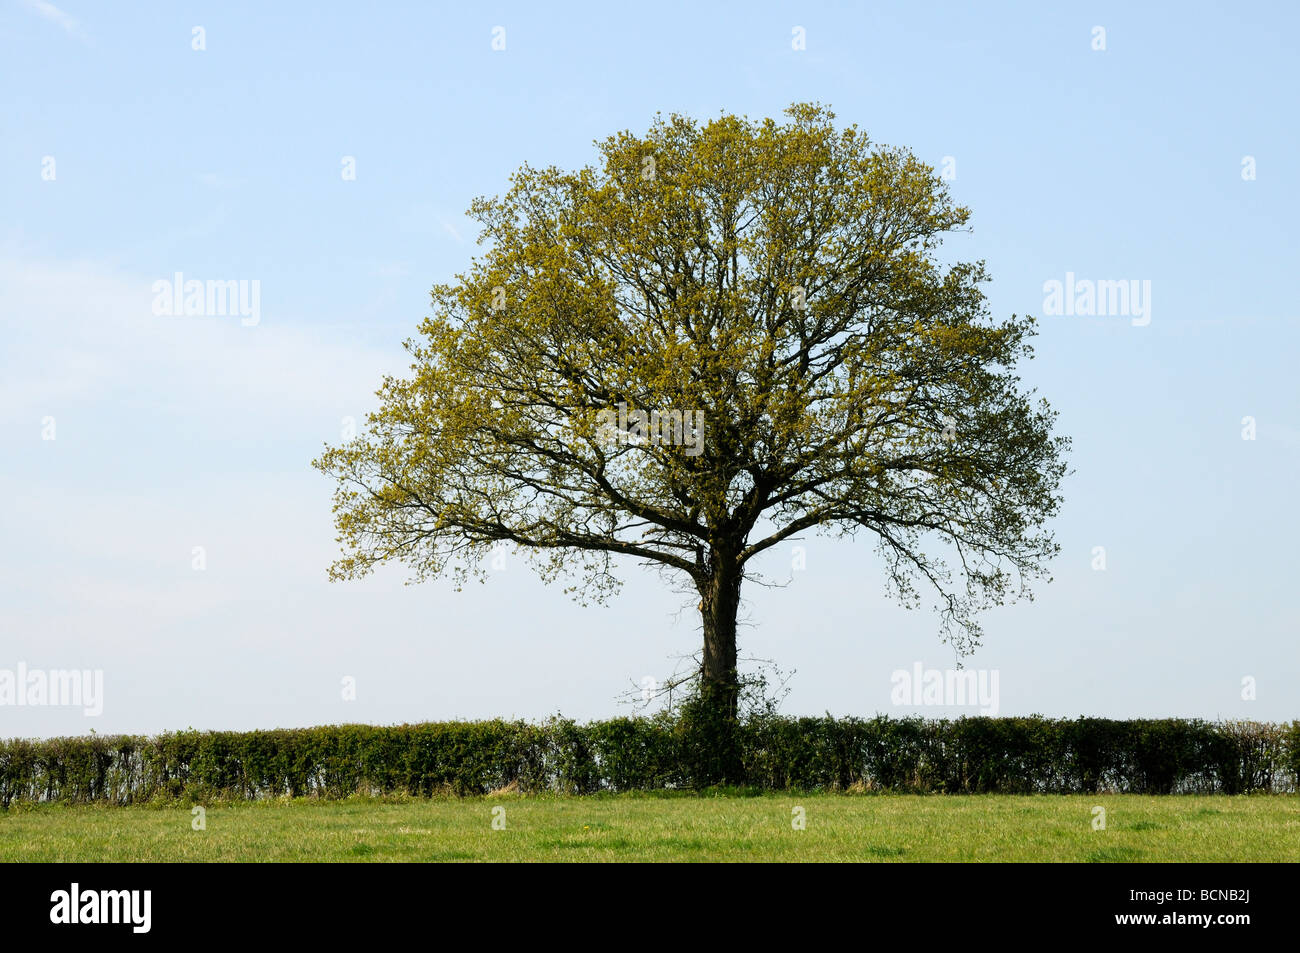 A neatly cut field hedge with an Oak tree (Quercus Robur) with leaves just appearing in spring. Burwash, Sussex, Stock Photo